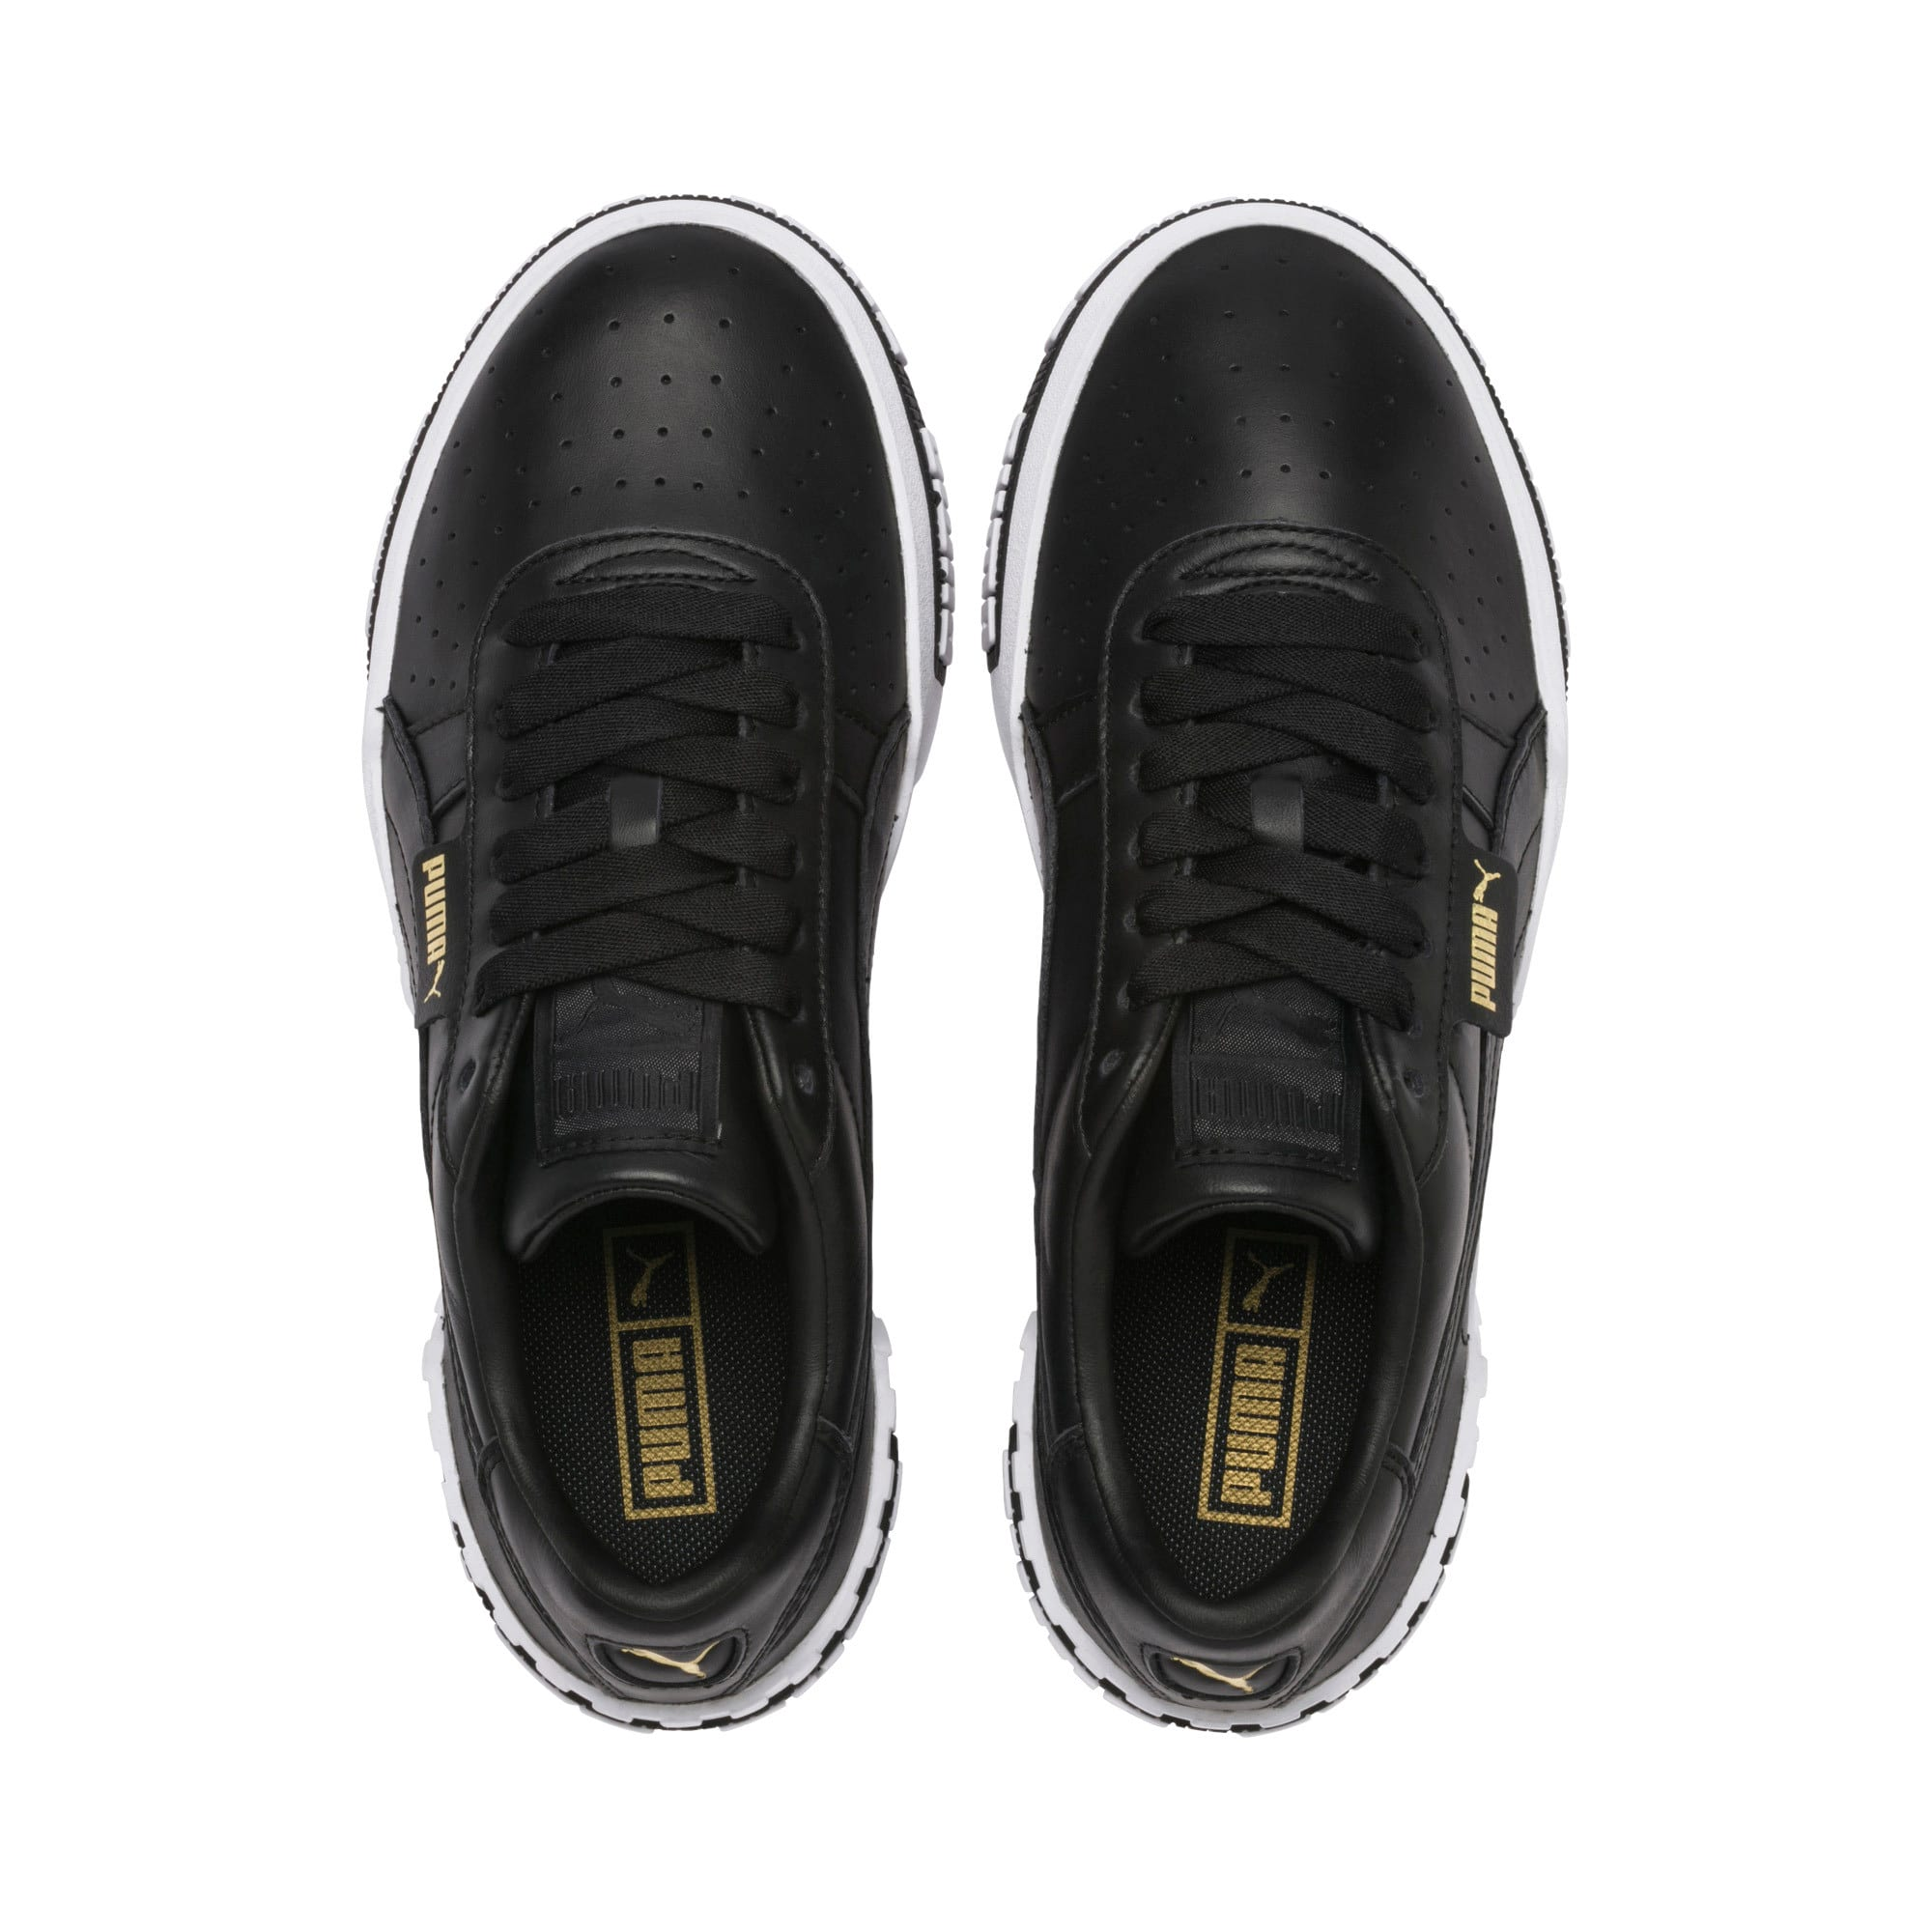 Thumbnail 8 of Damskie buty sportowe Cali Bold, Puma Black-Metallic Gold, medium